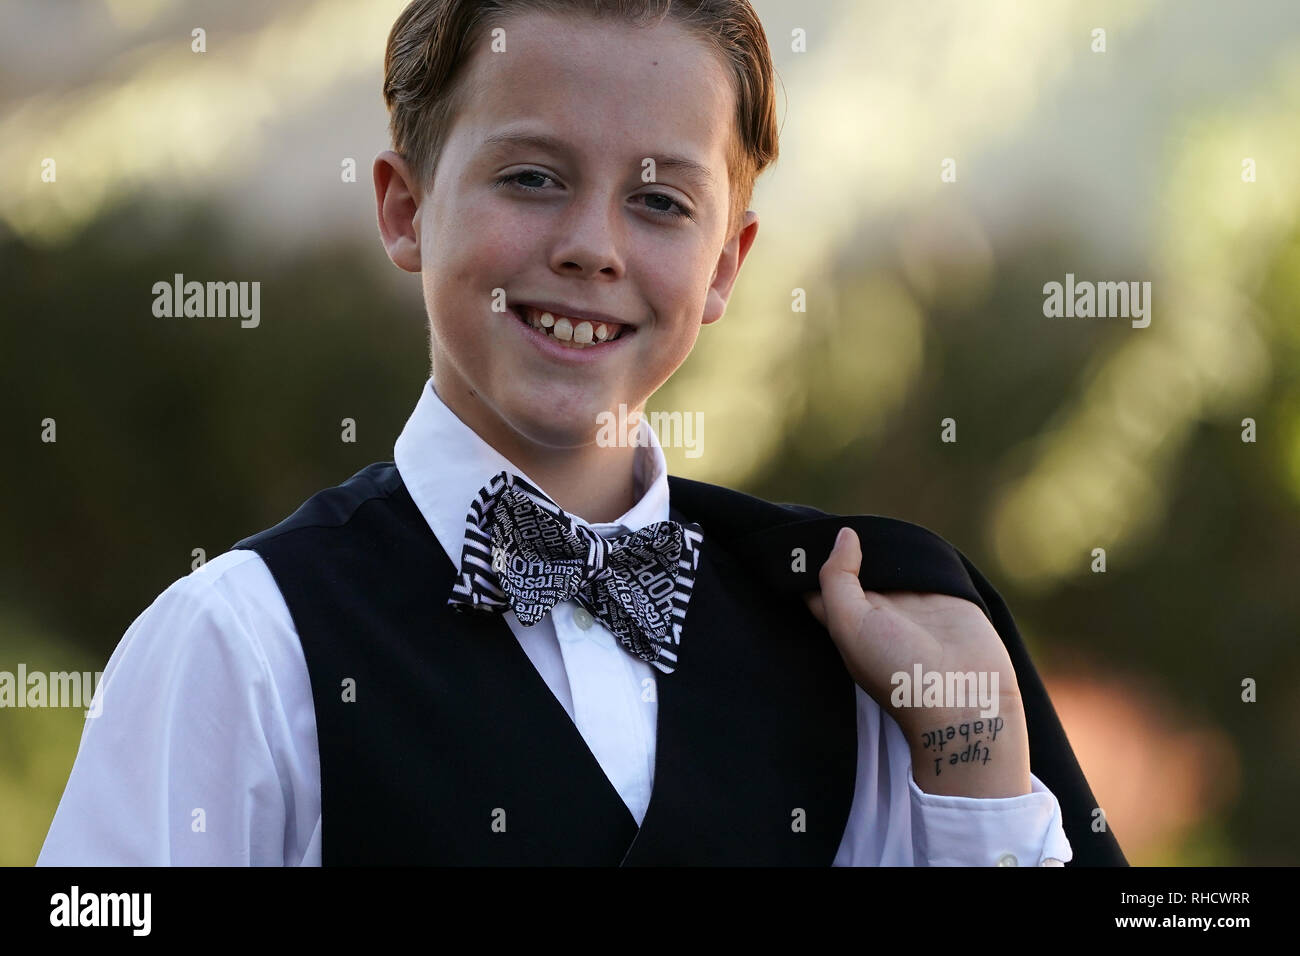 A boy in a suit with a bow tie poses for a portrait. - Stock Image